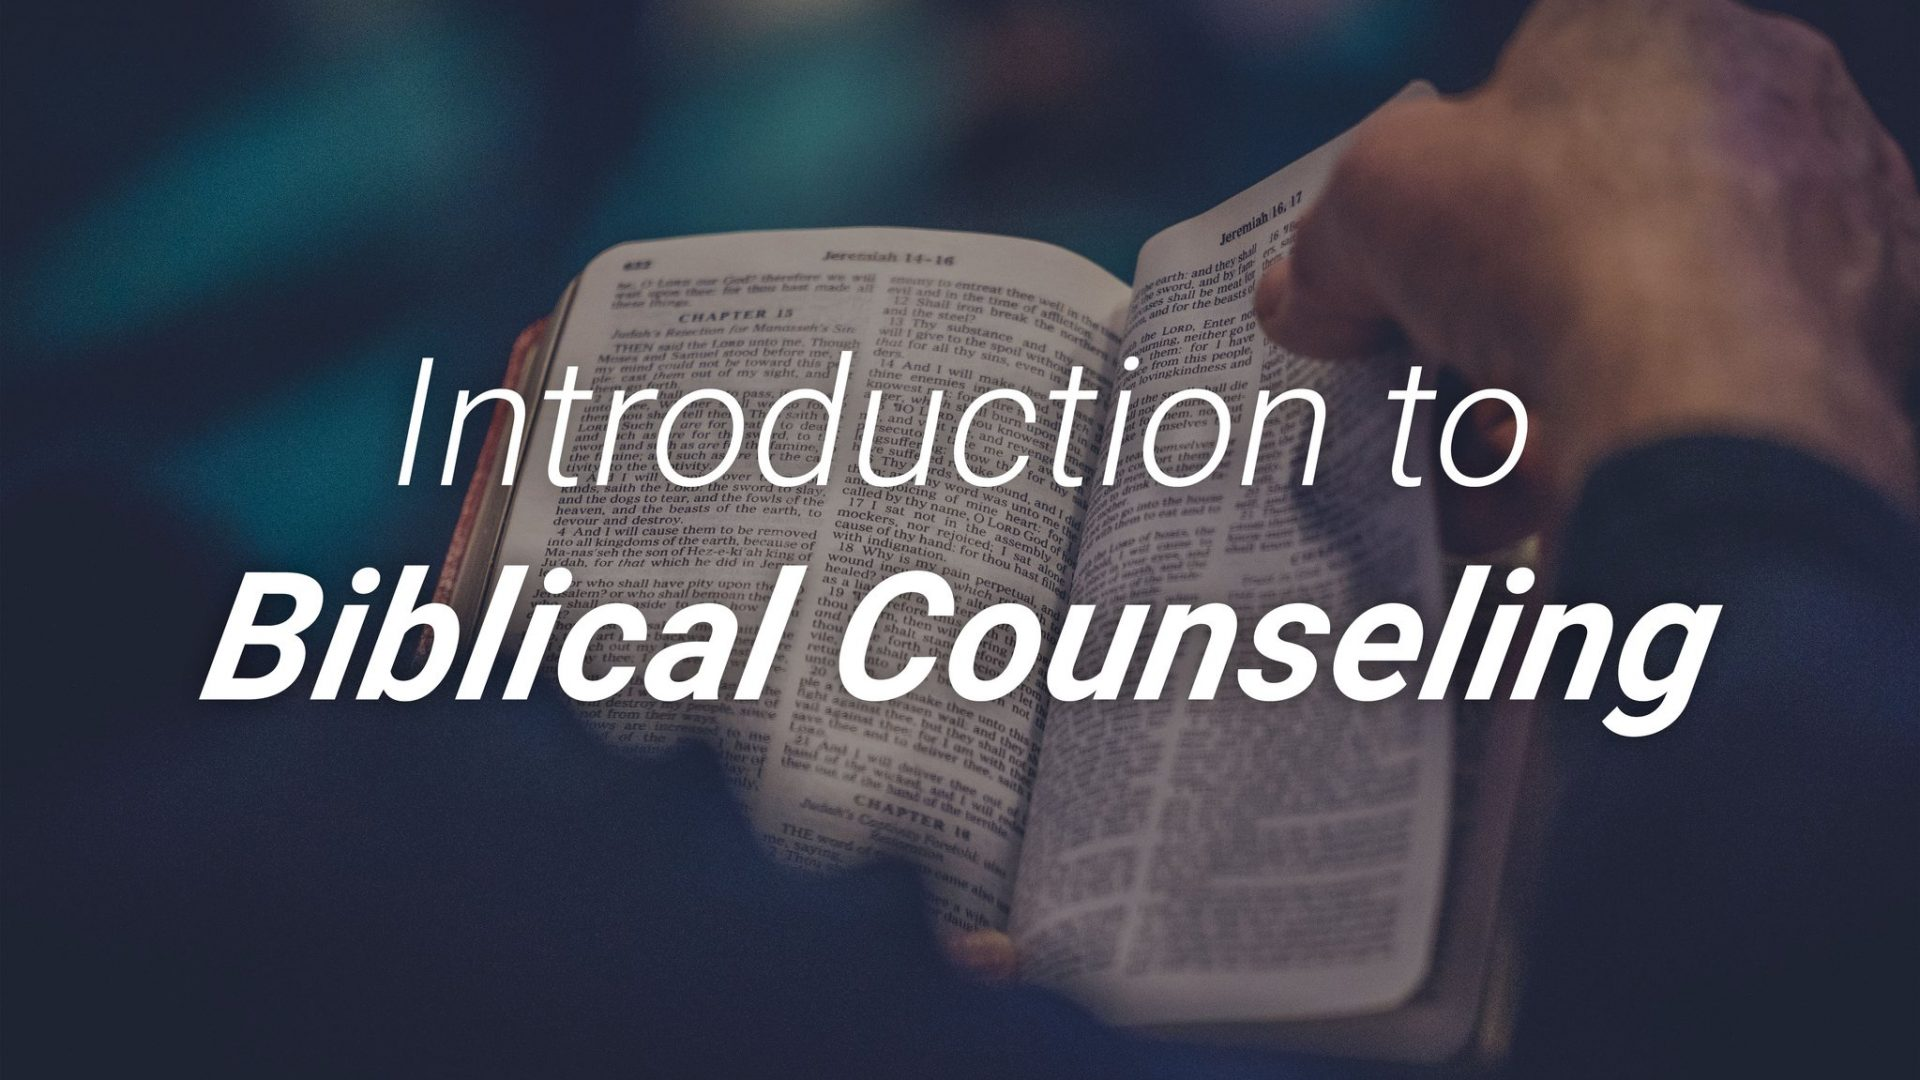 Biblical_Counseling_New_1024x1024@2x